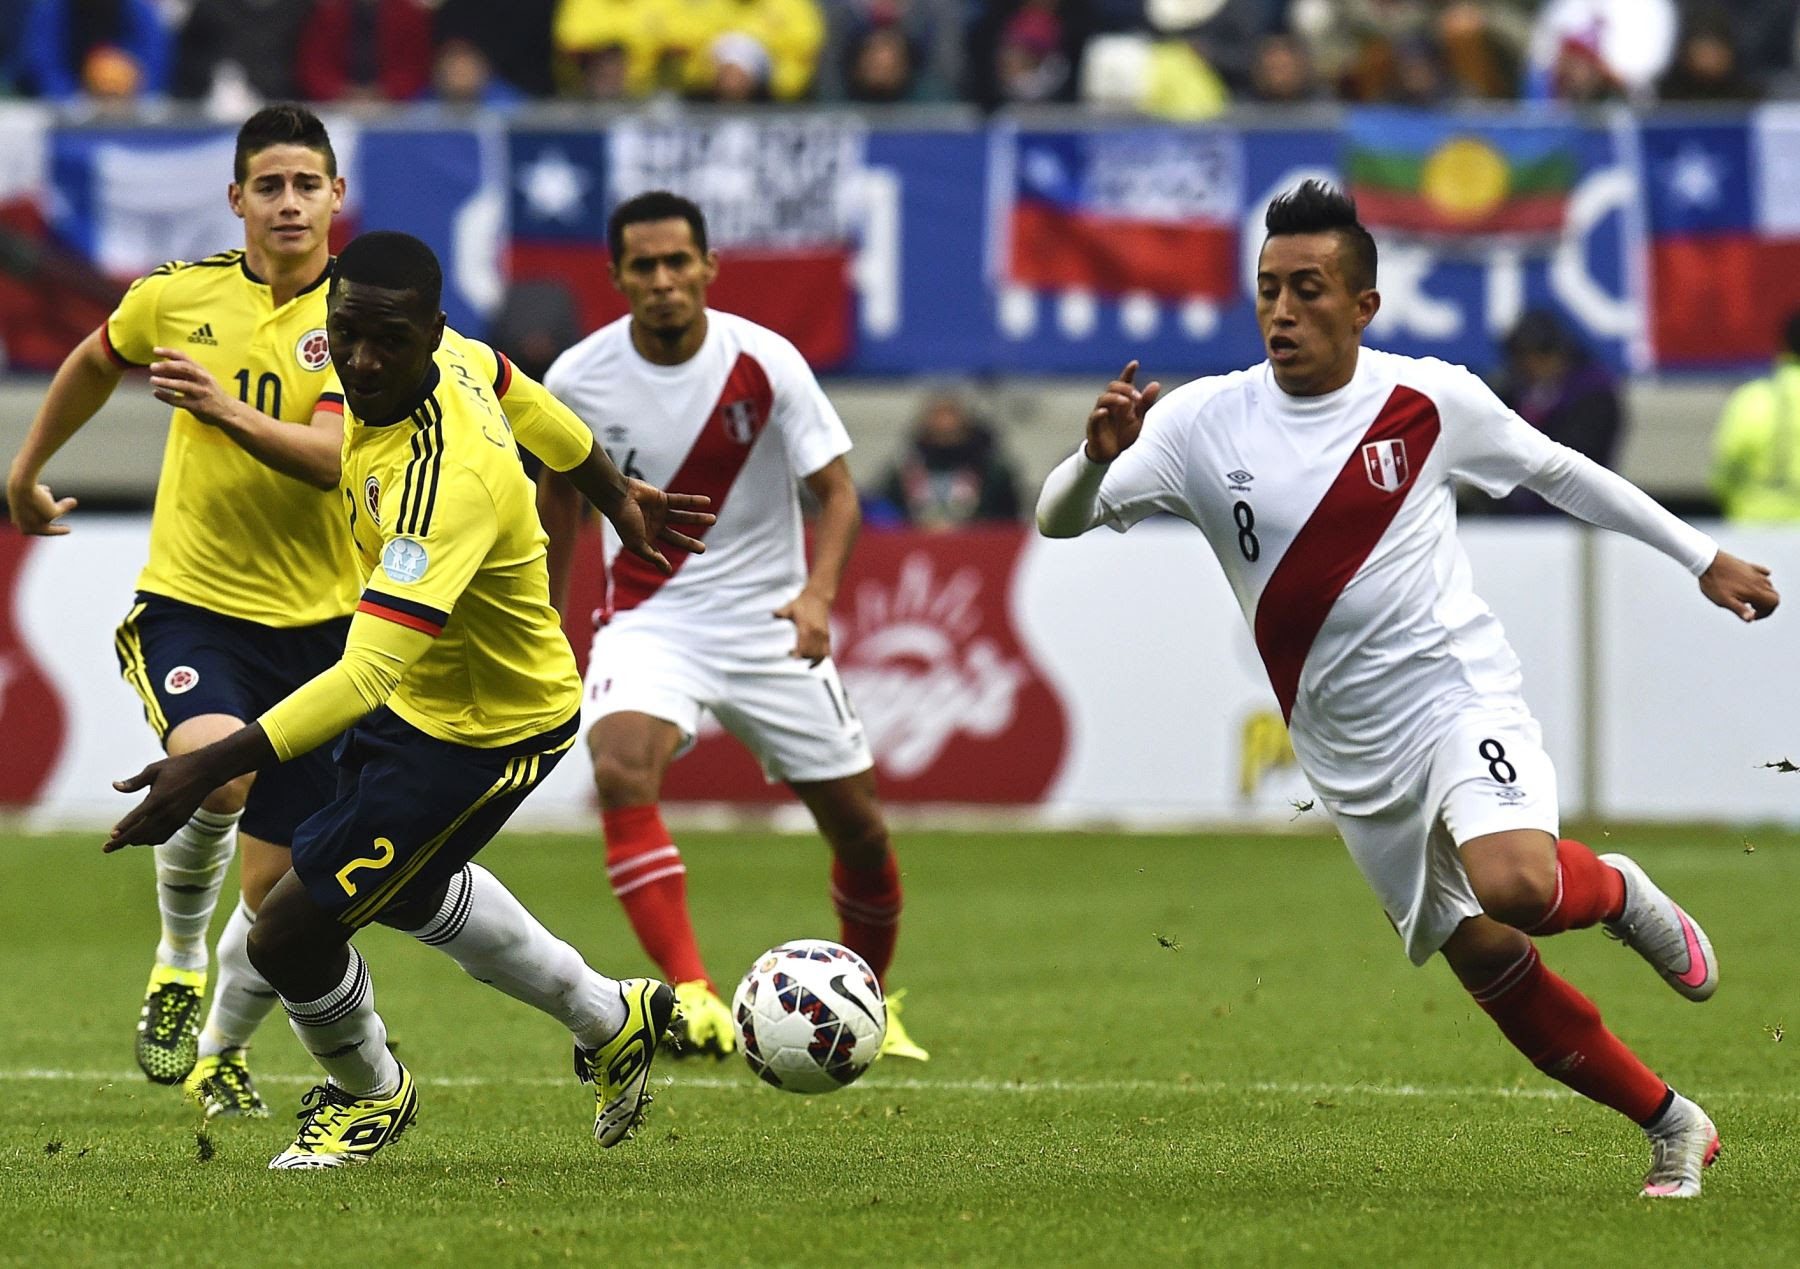 Peru vs Colombia Preview, Tips and Odds - Sportingpedia ...